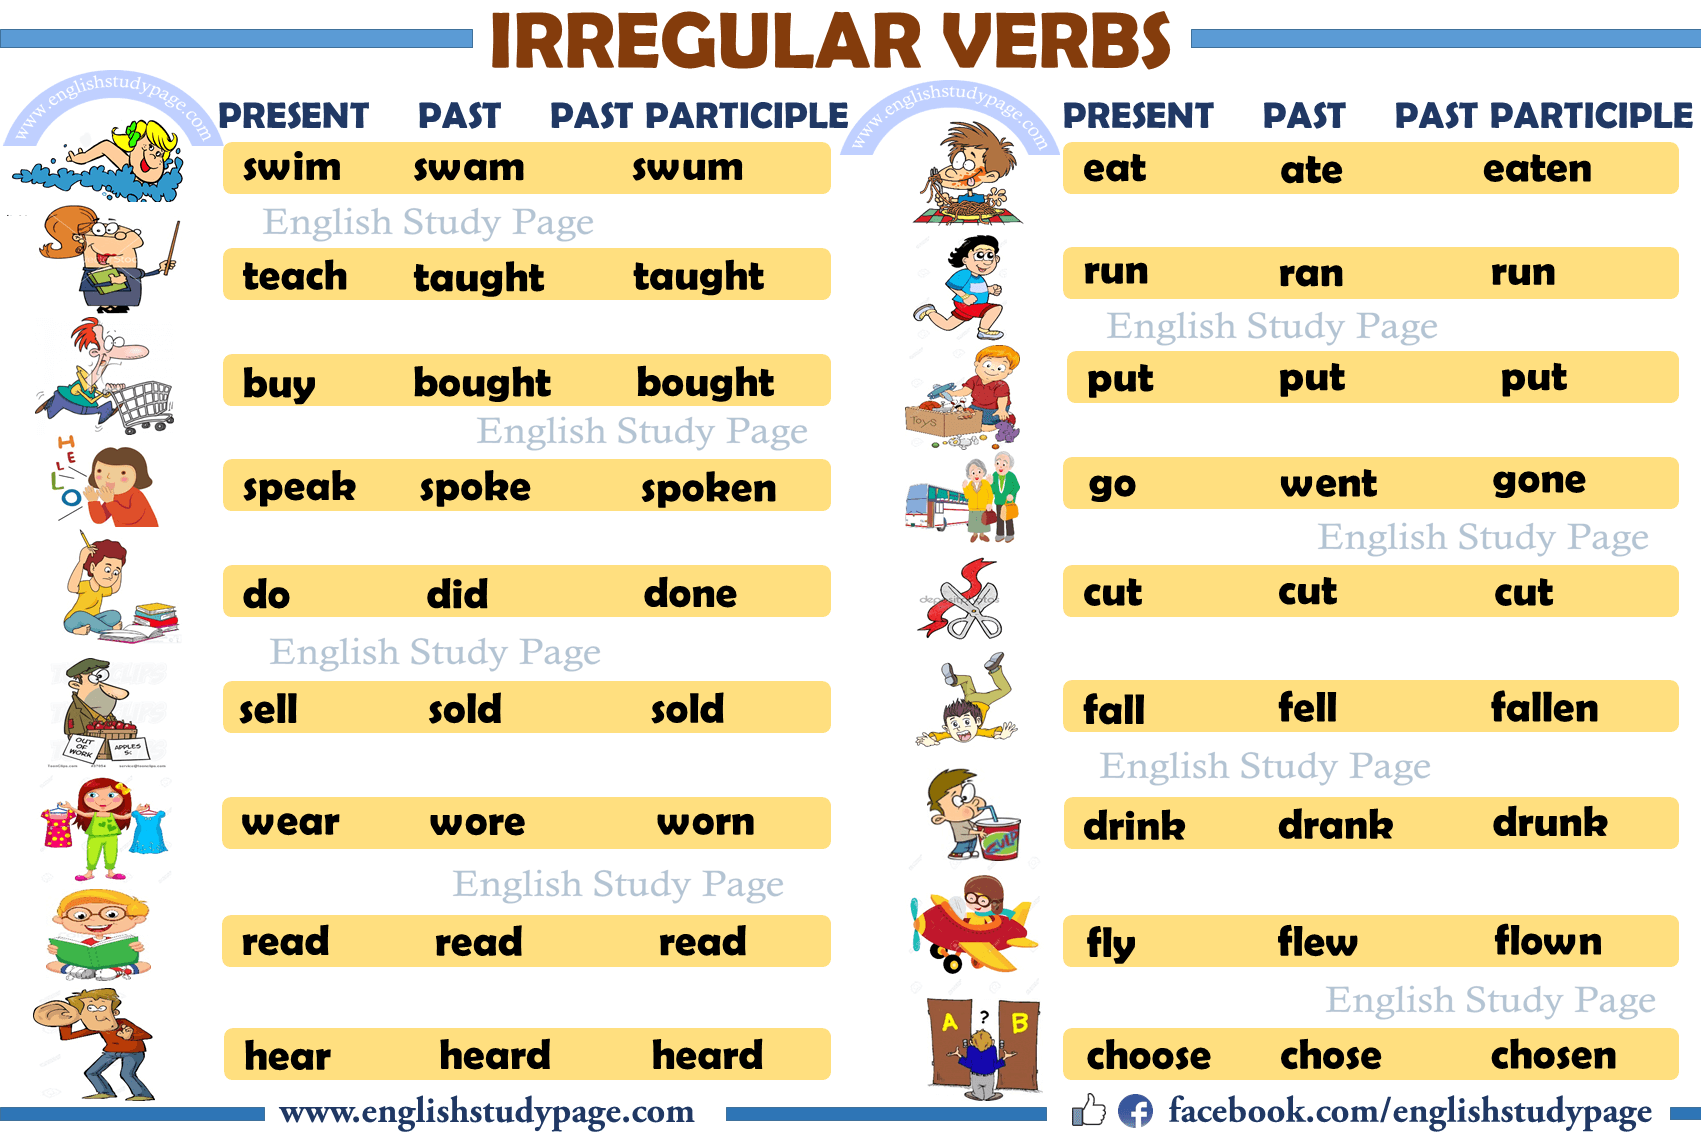 Detailed Irregular Verbs List